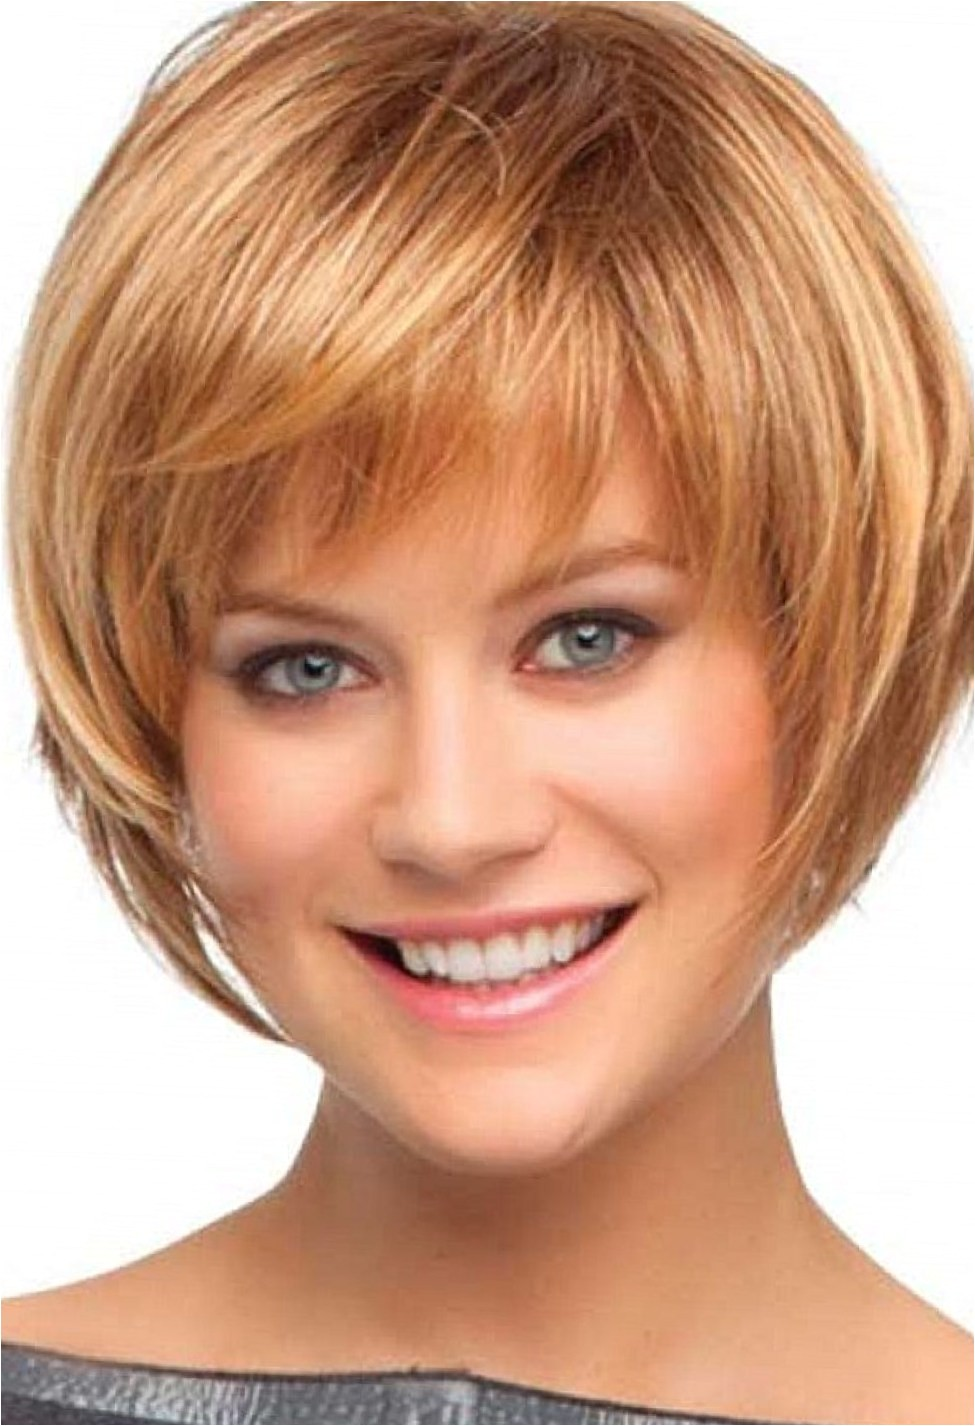 Short Bang Bob Haircuts Short Bob Hairstyles with Bangs 4 Perfect Ideas for You